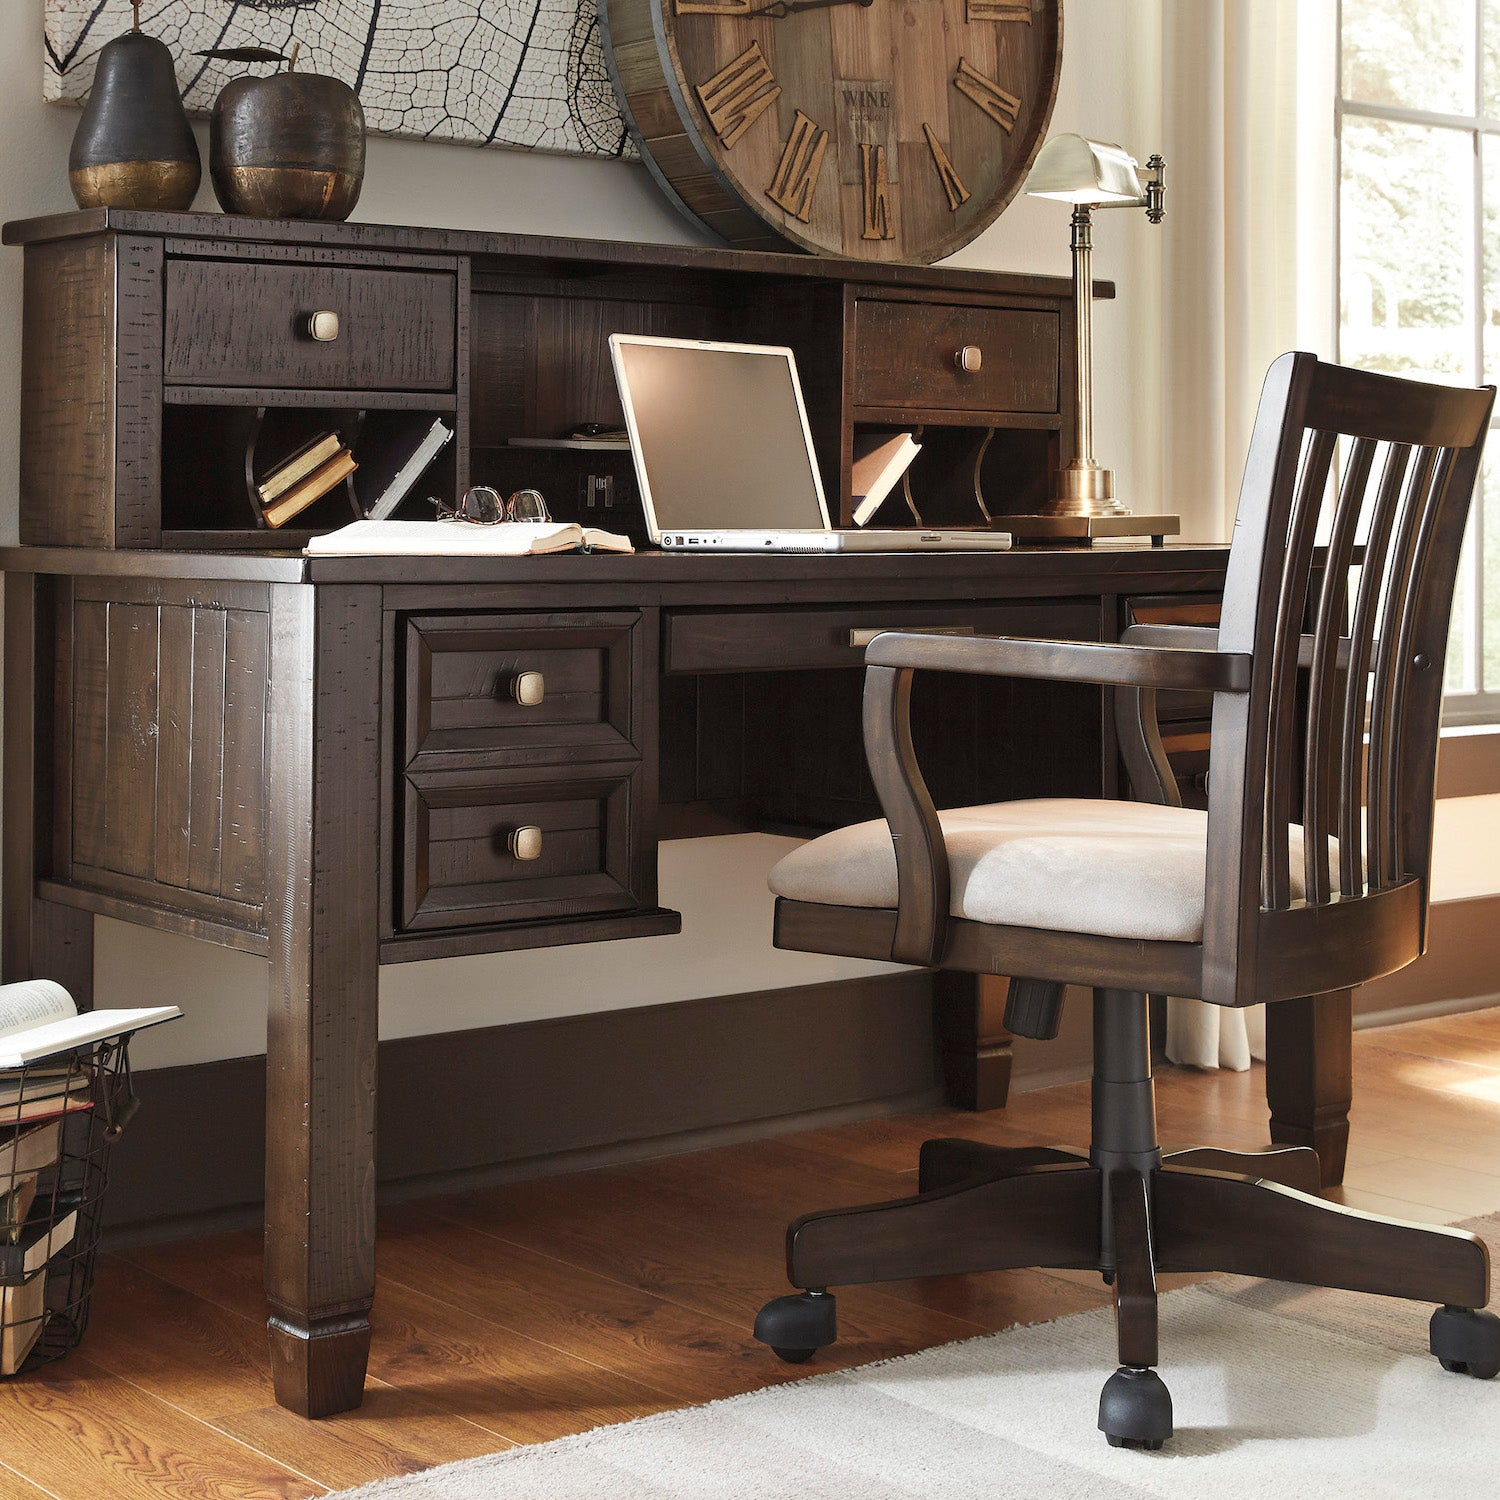 """American Signature Furniture Commercial Gagging: Townser 60"""" Desk By Signature Design By Ashley"""